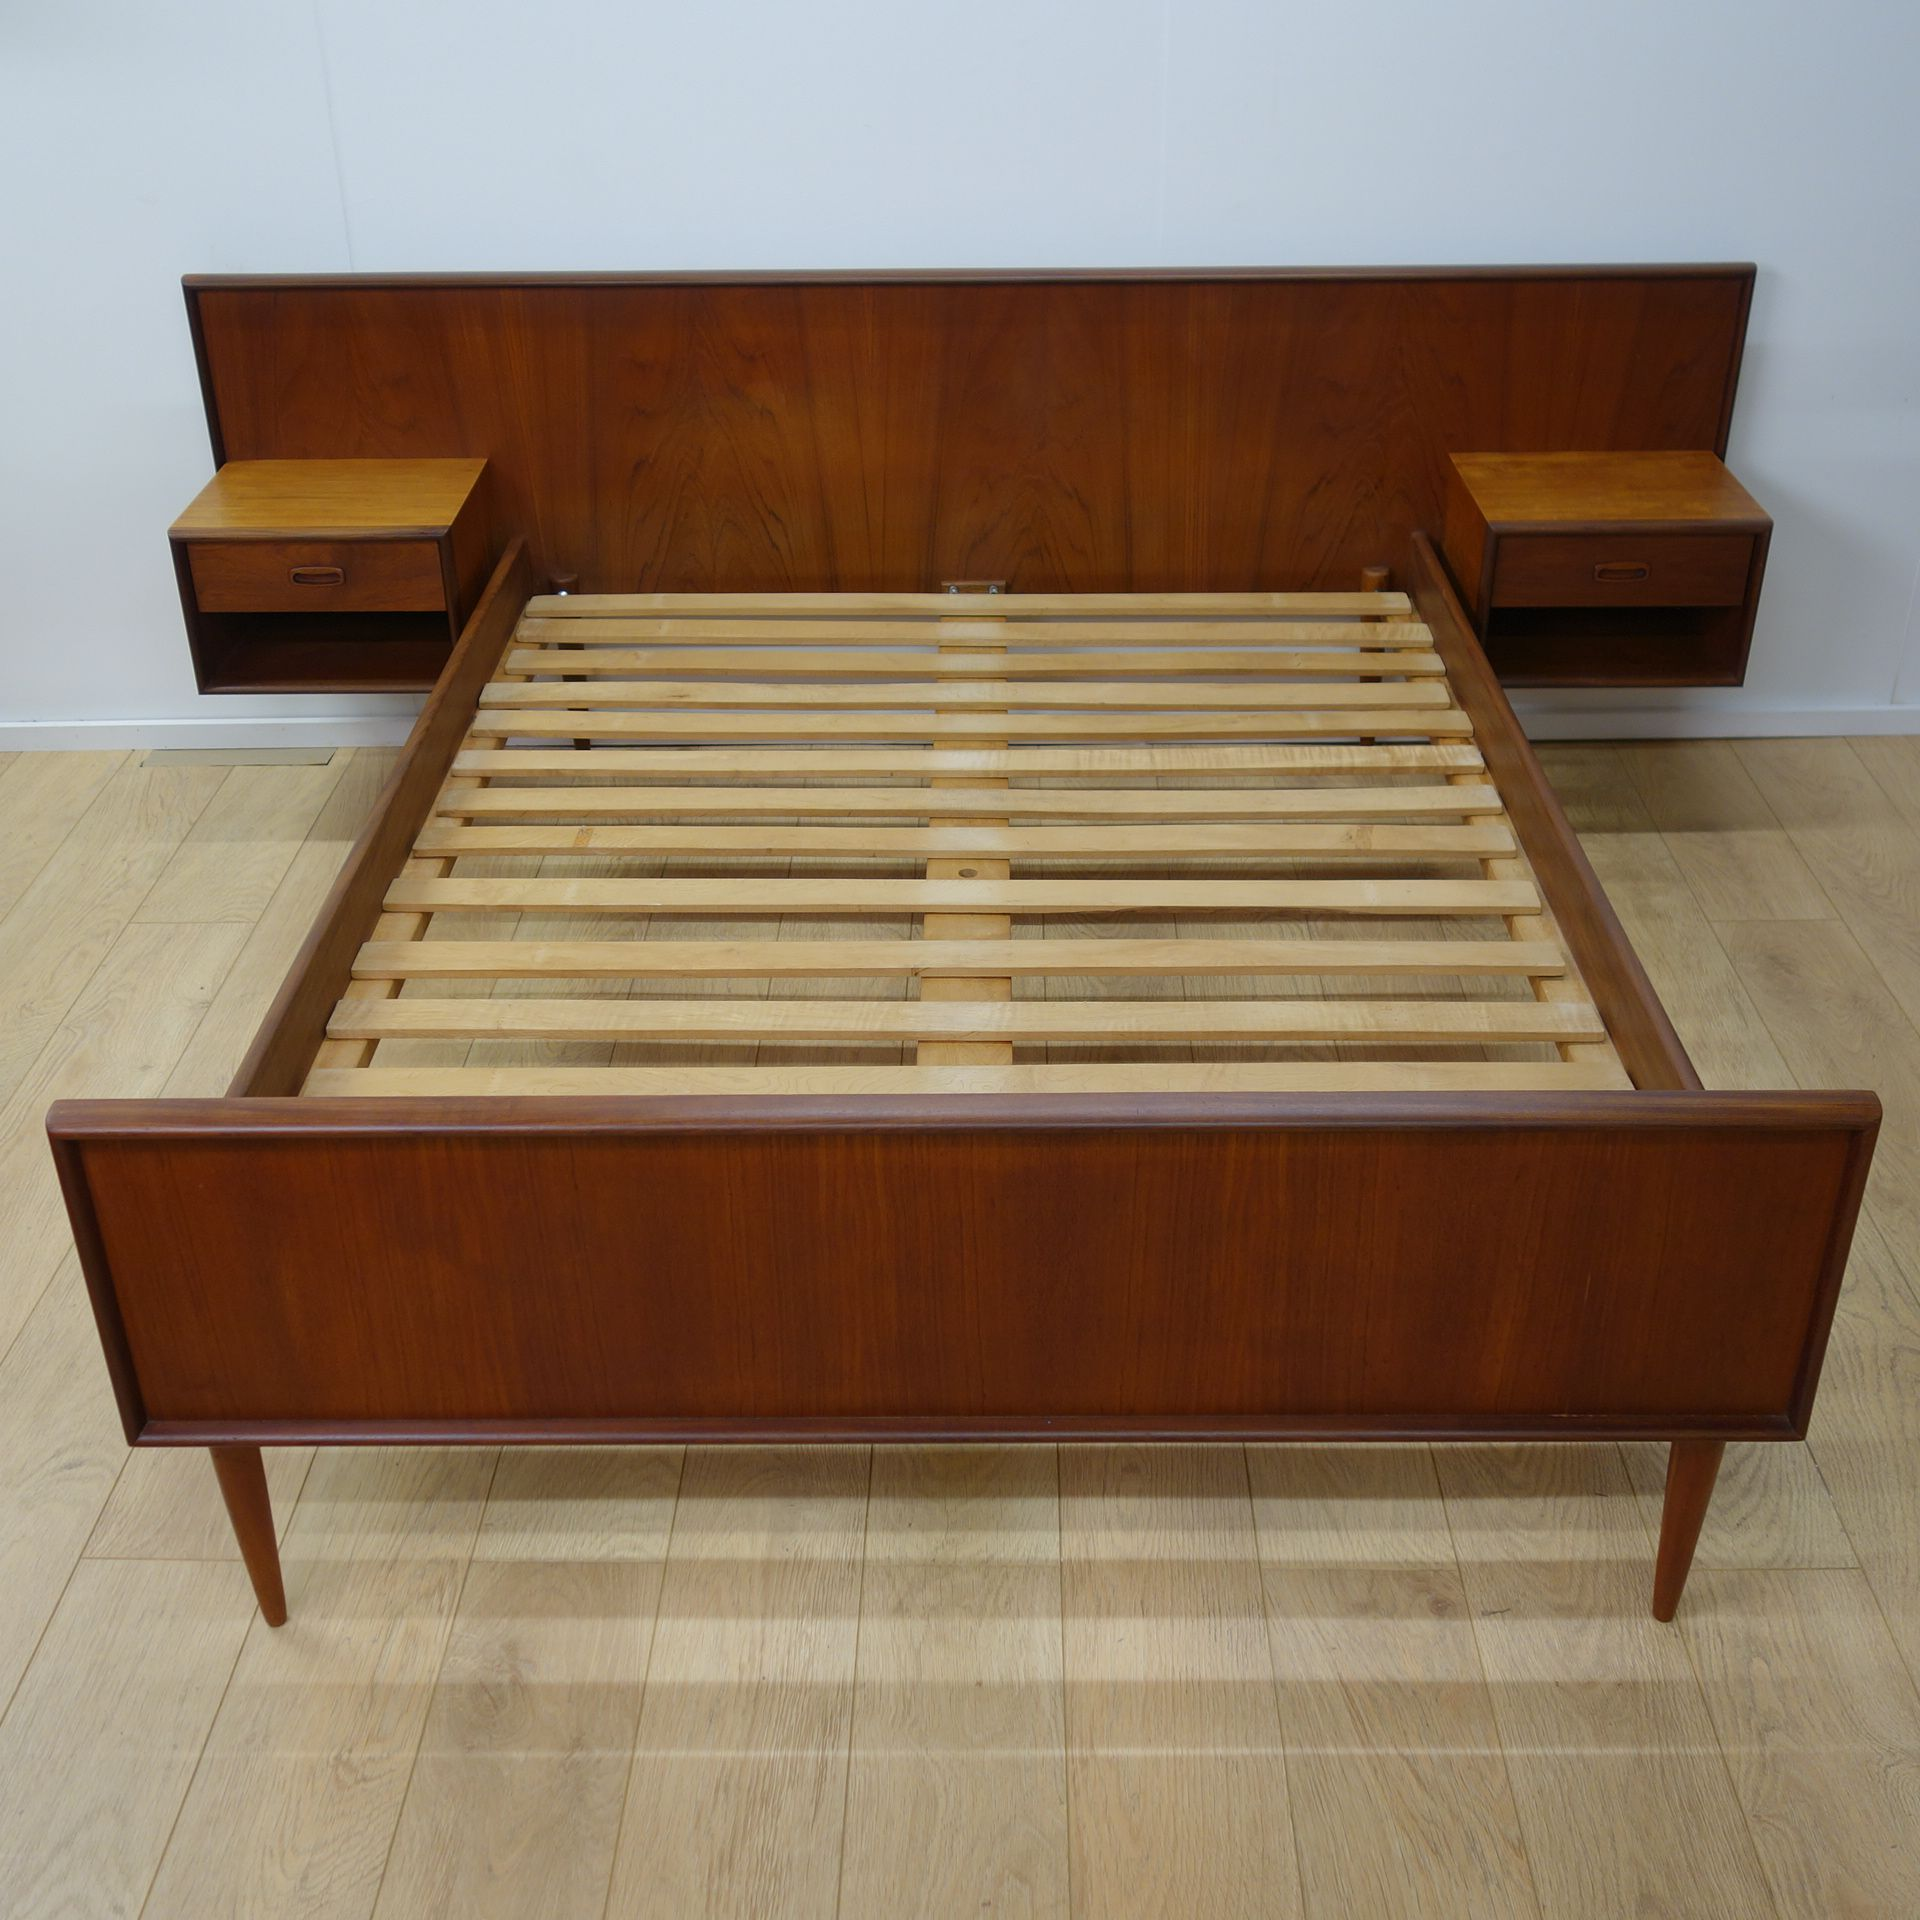 Scandinavian Teak Bedroom Furniture Mid Century Danish Teak Bed With Night Stands Furniture